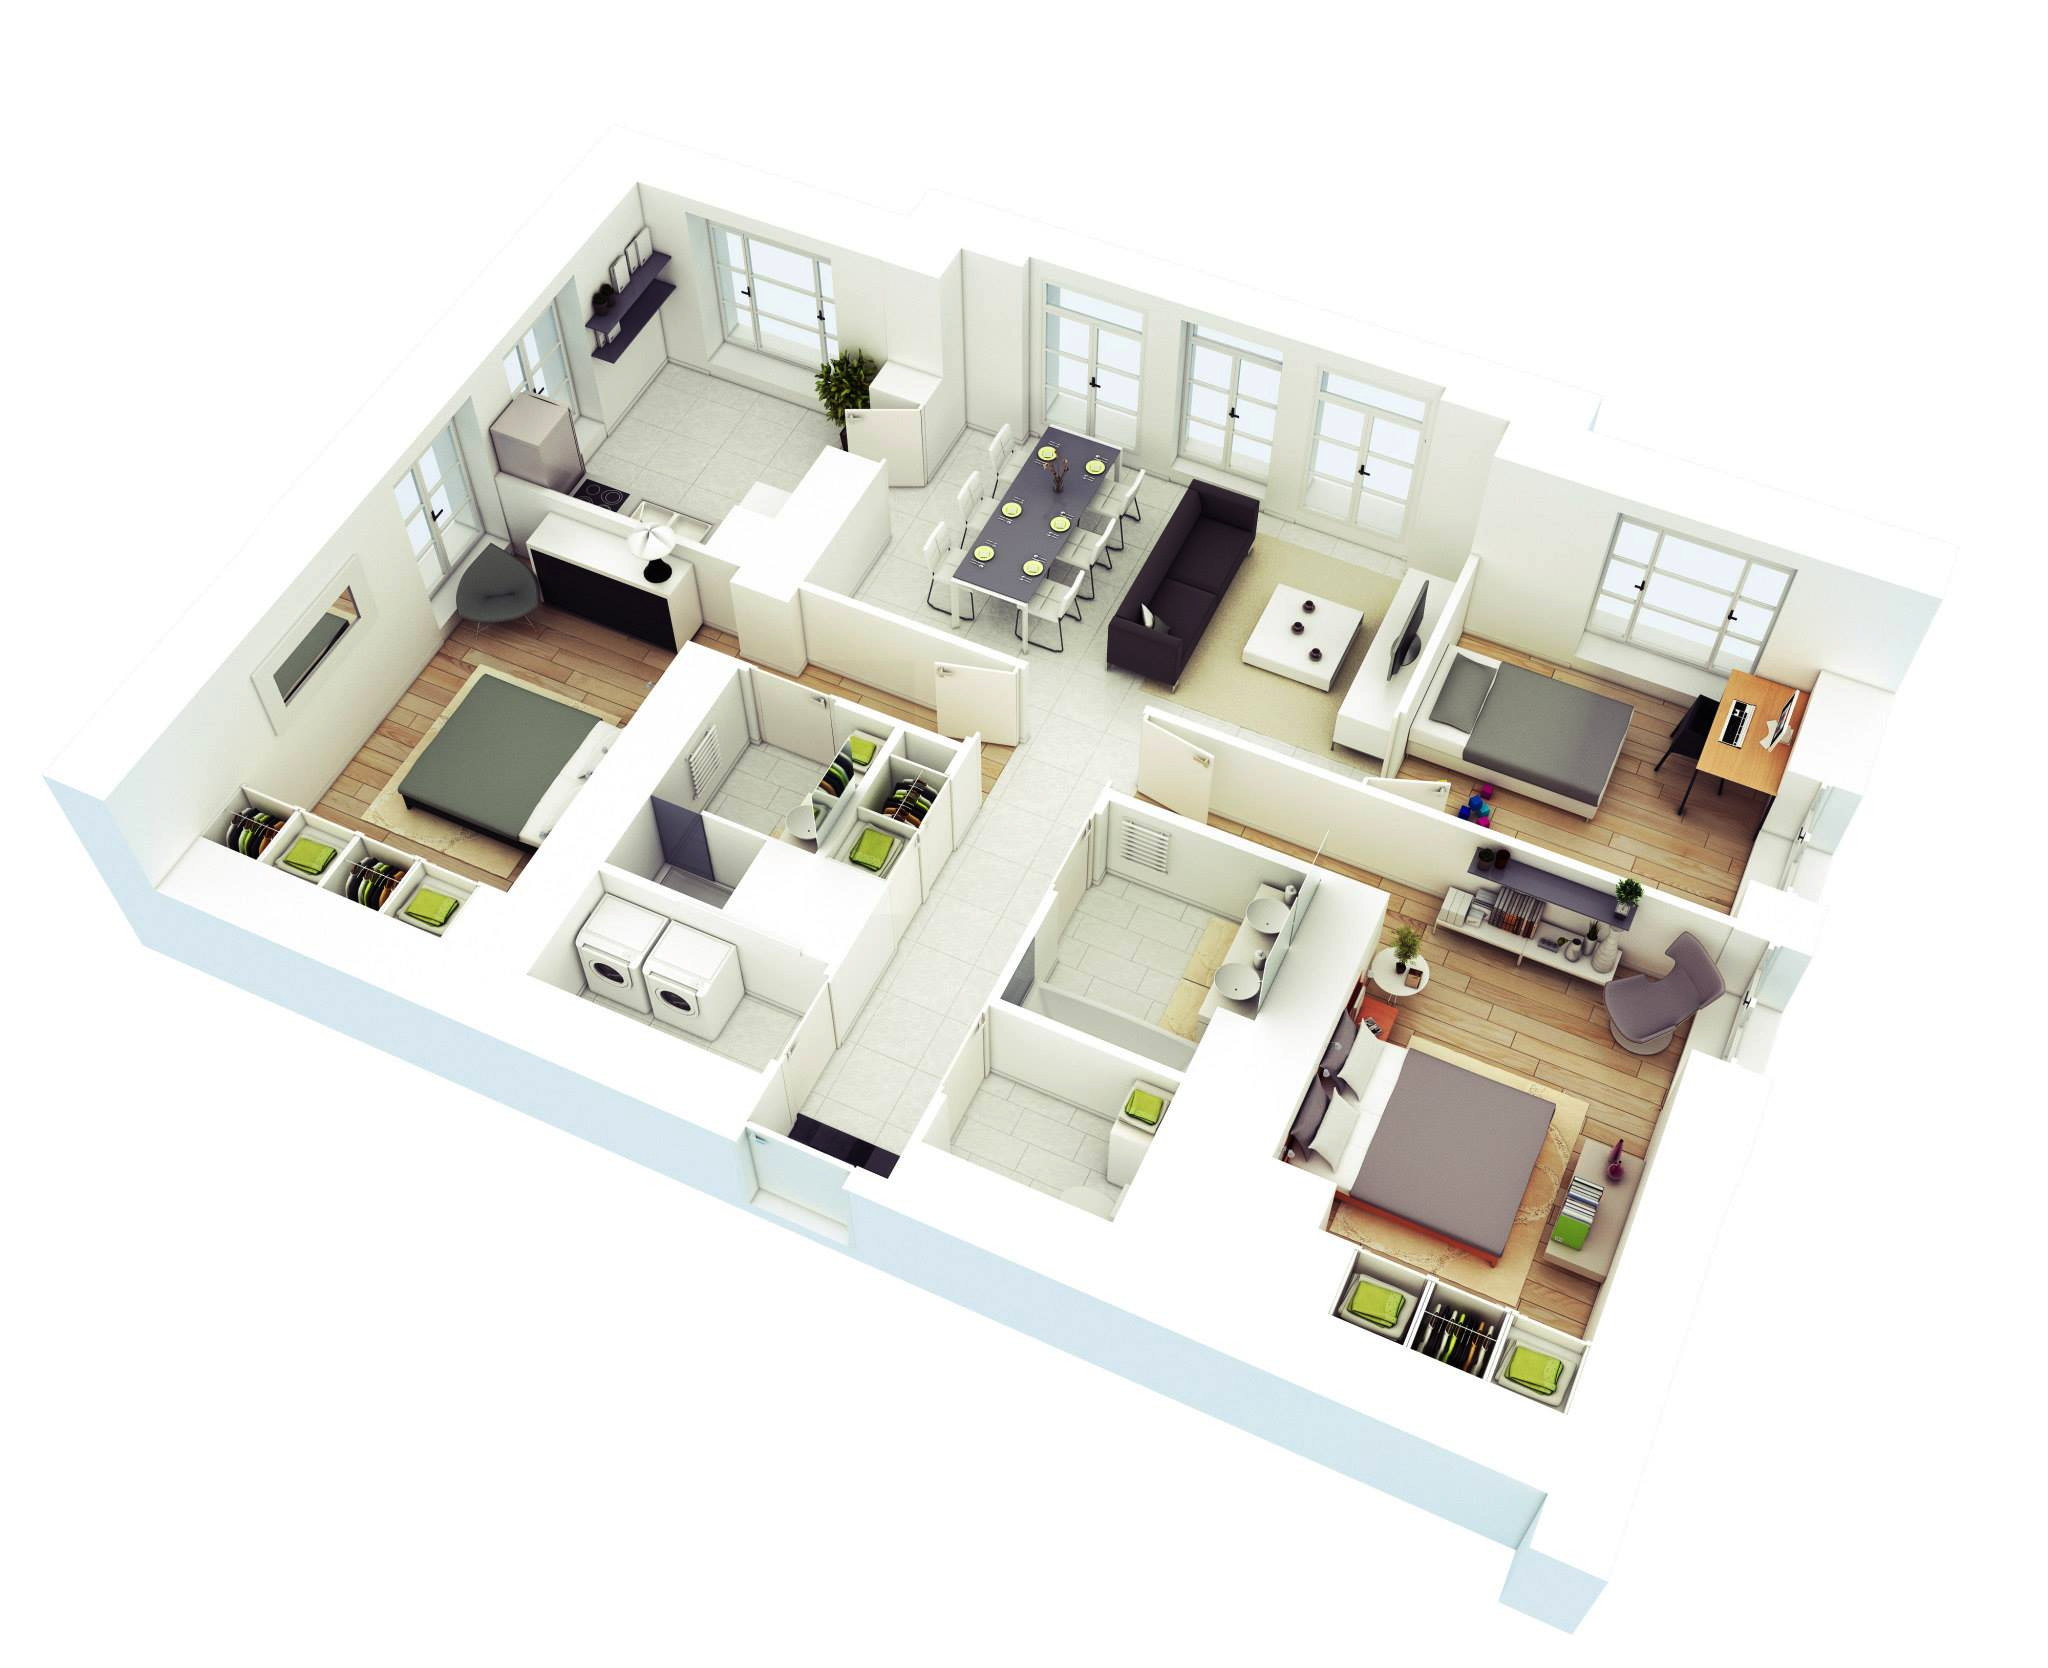 25 more 3 bedroom 3d floor plans - Home Design Blueprints